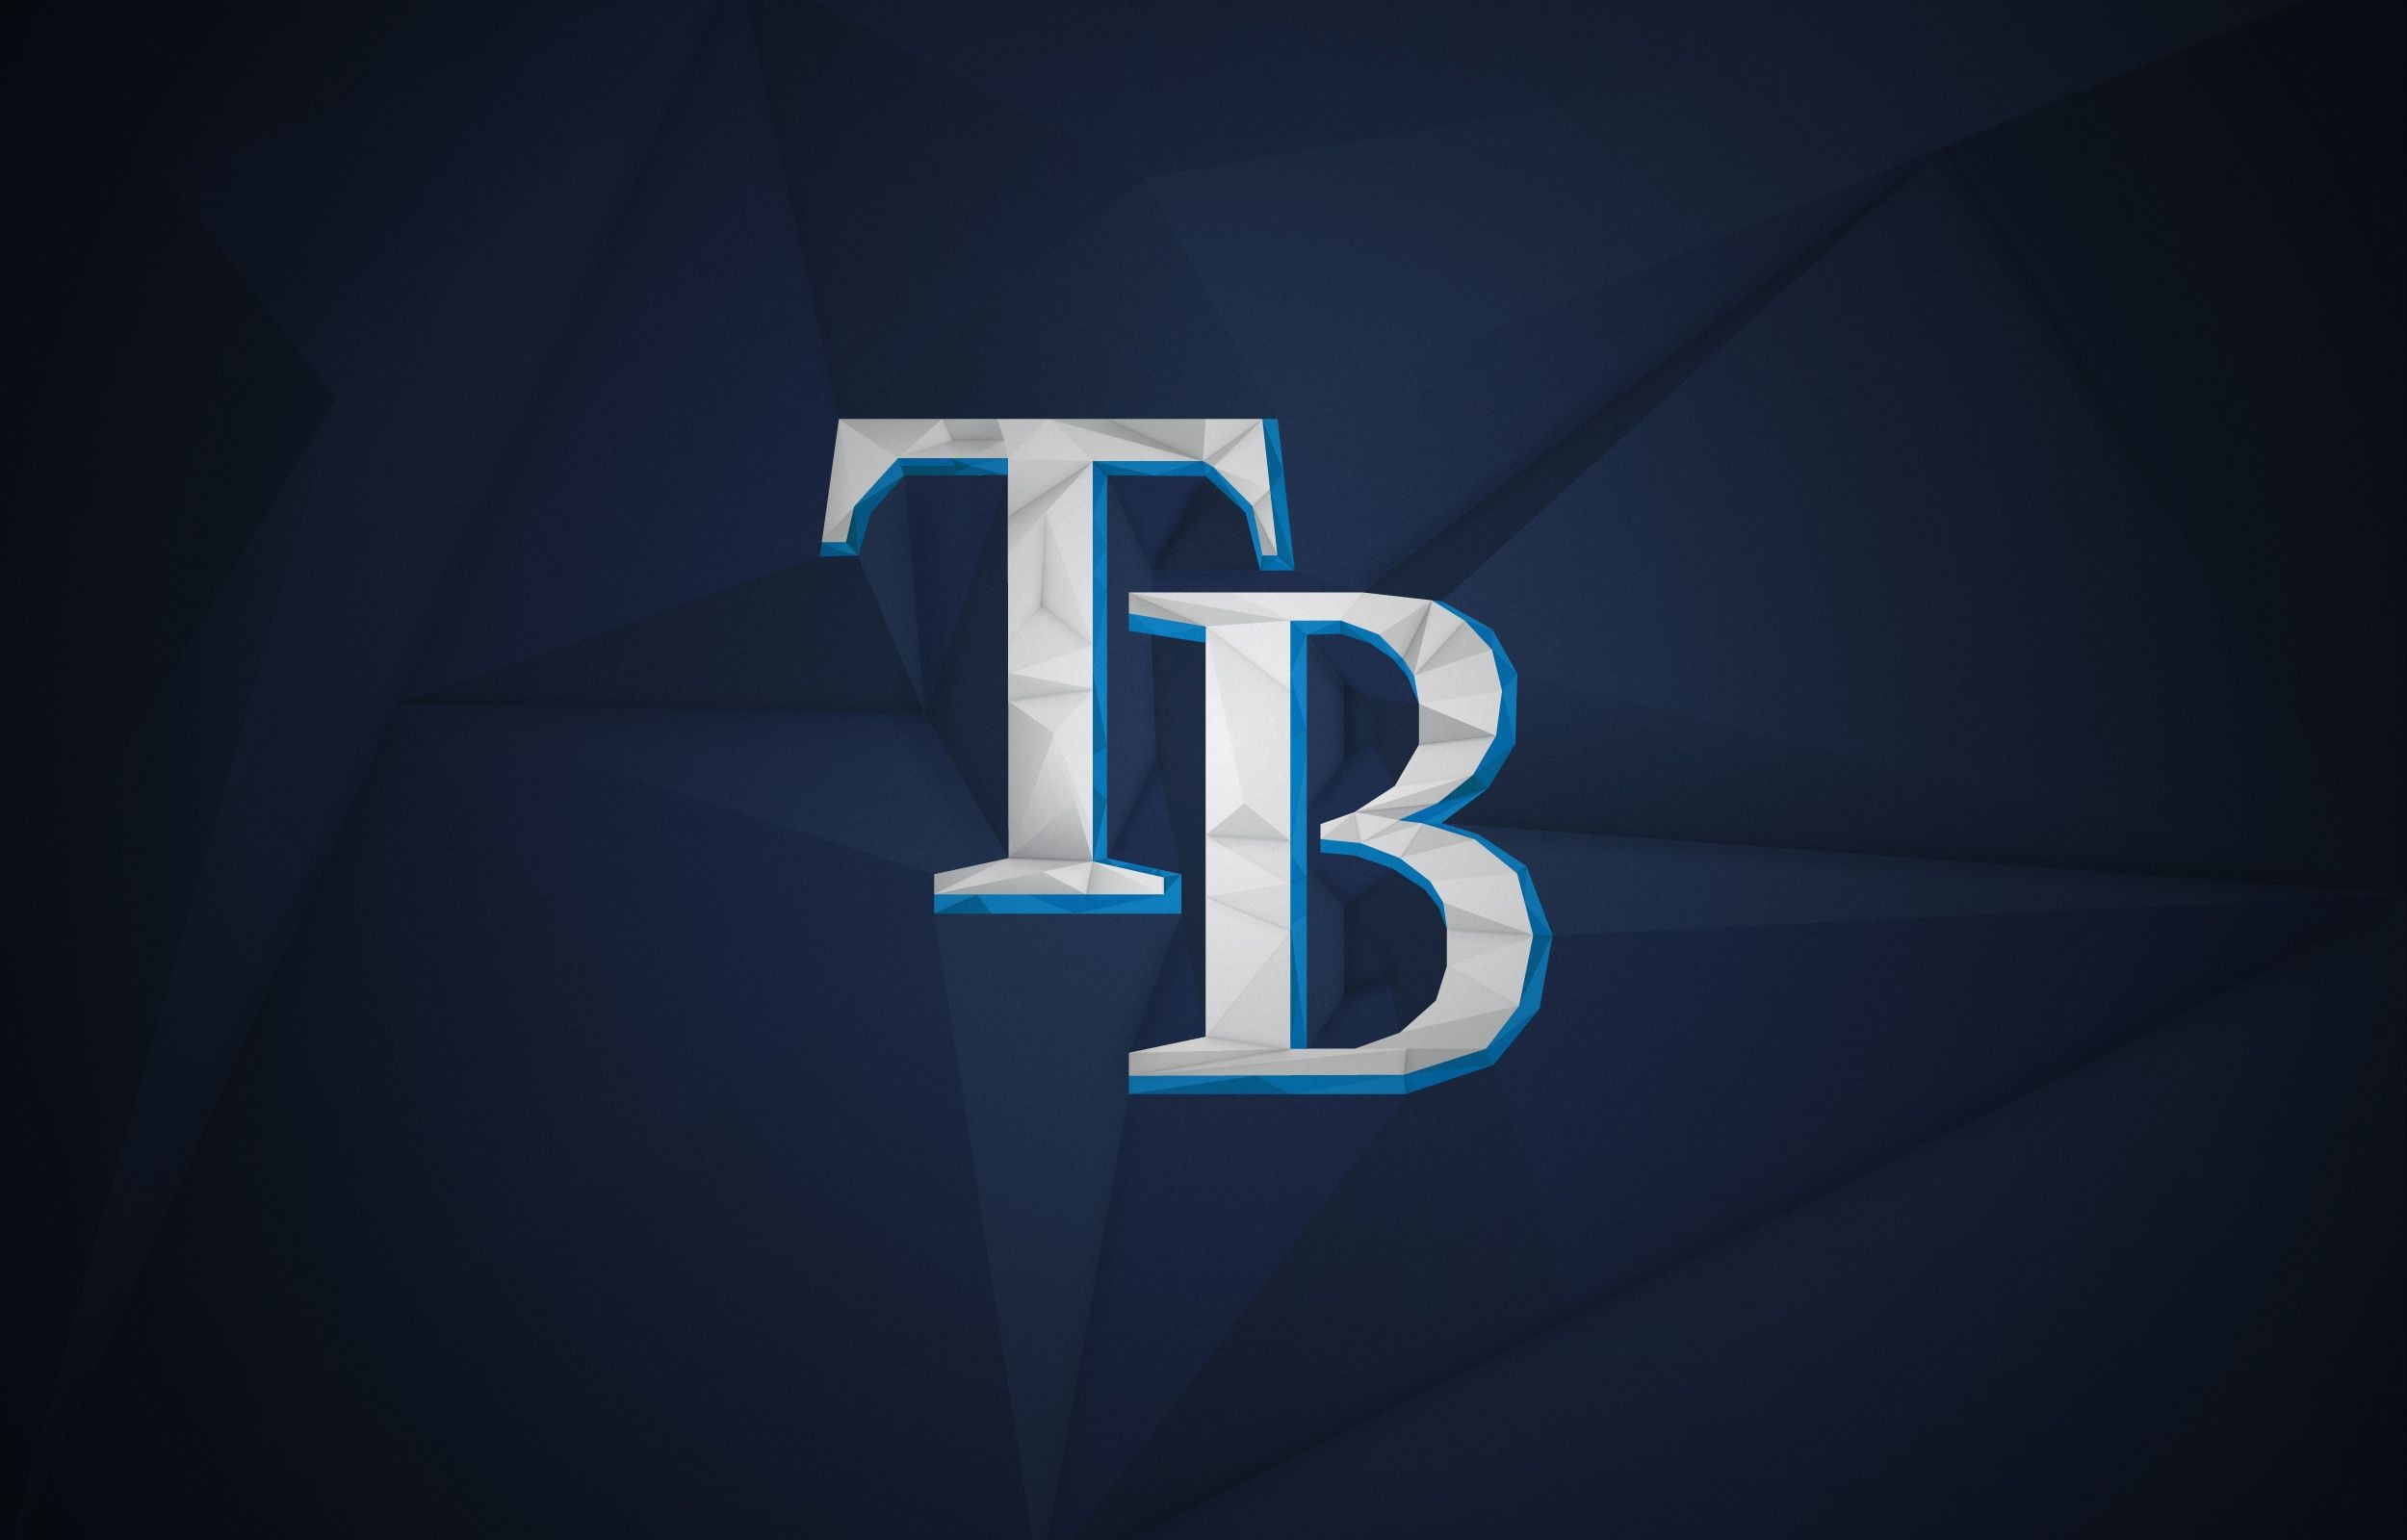 2500x1600 Tampa Bay Rays Computer Wallpaper